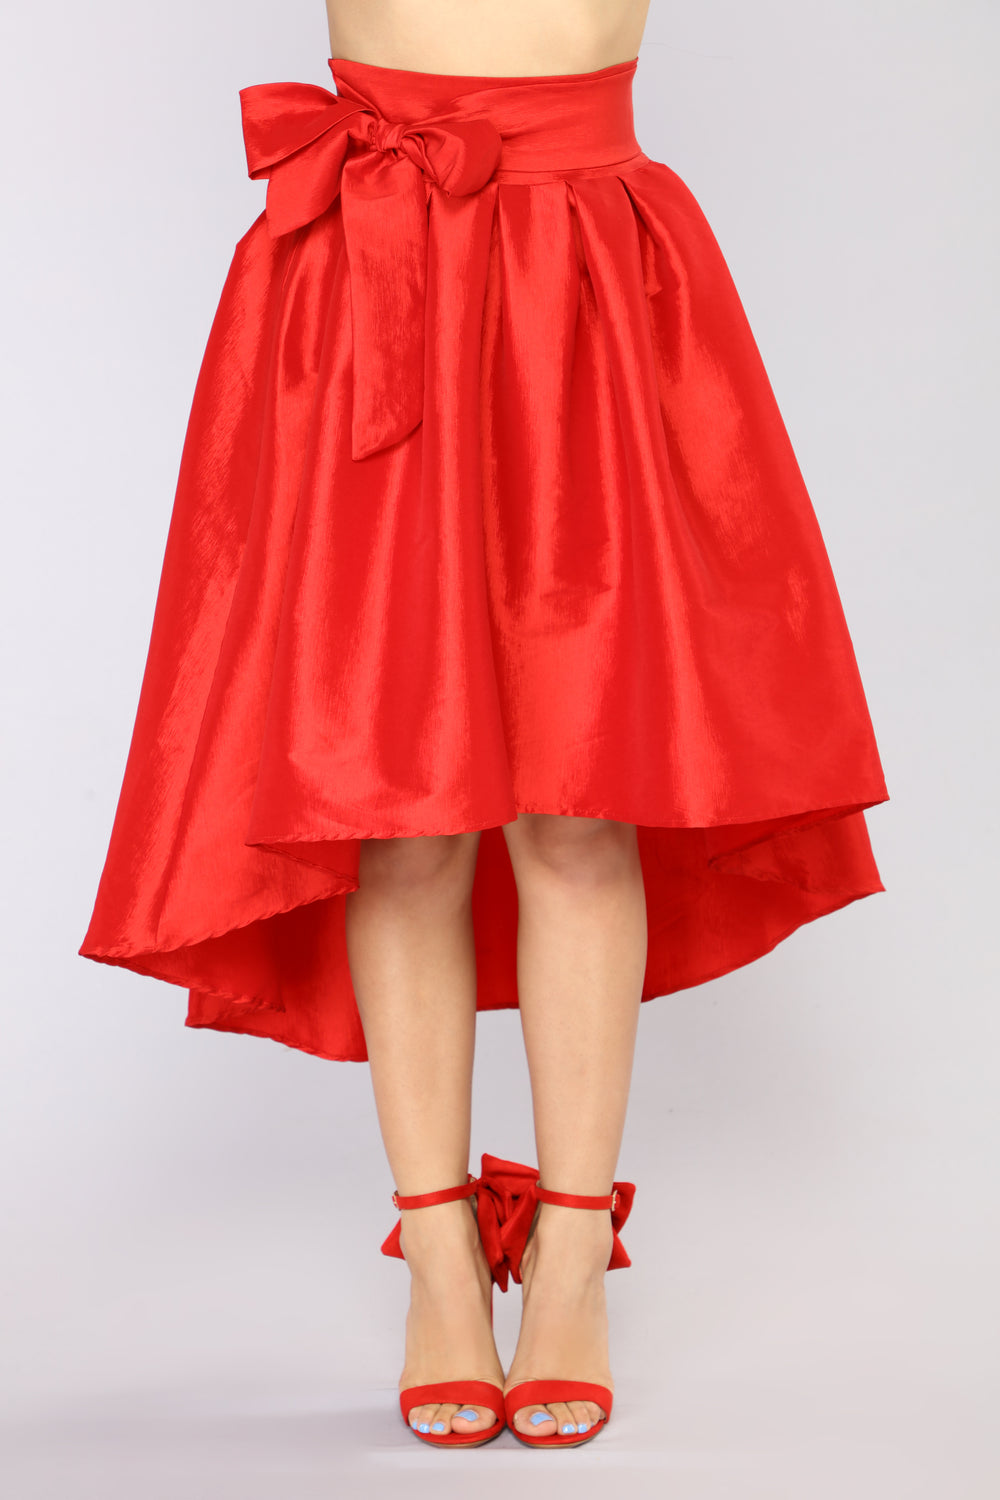 Hold Onto Me Skirt - Red